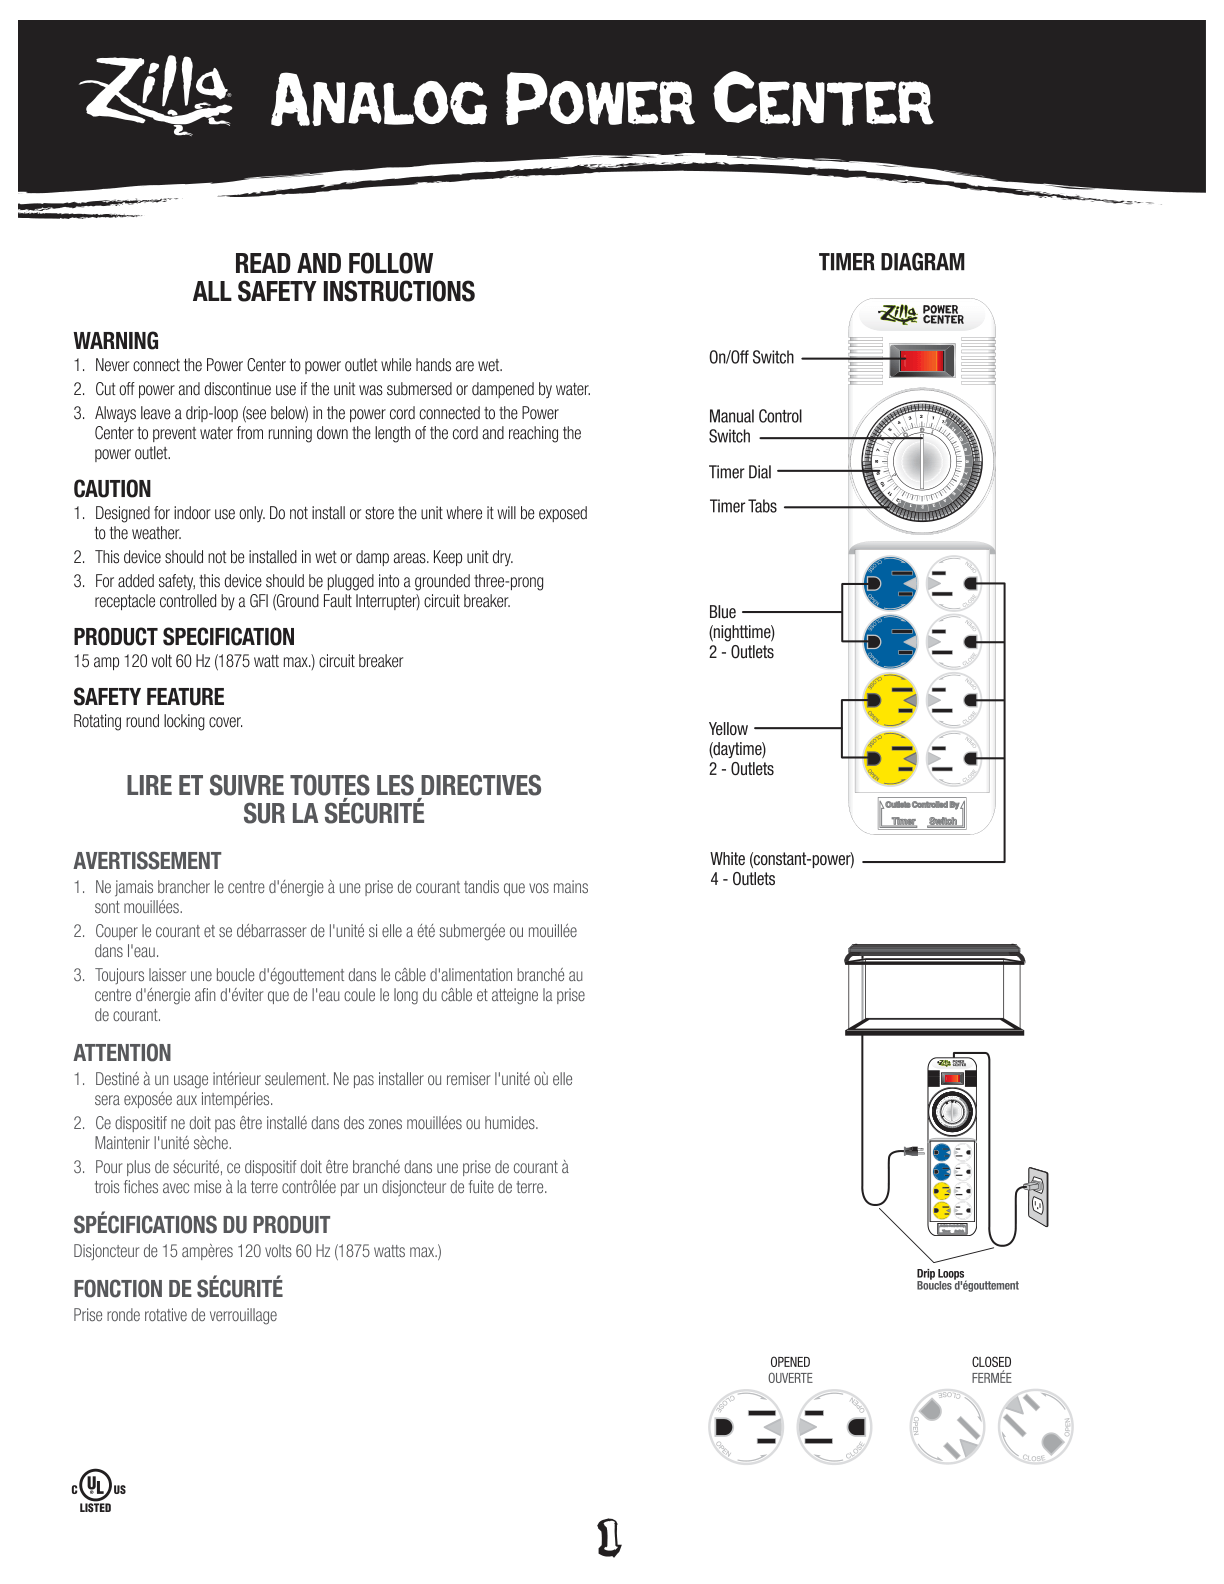 Analog Power Center Instructions